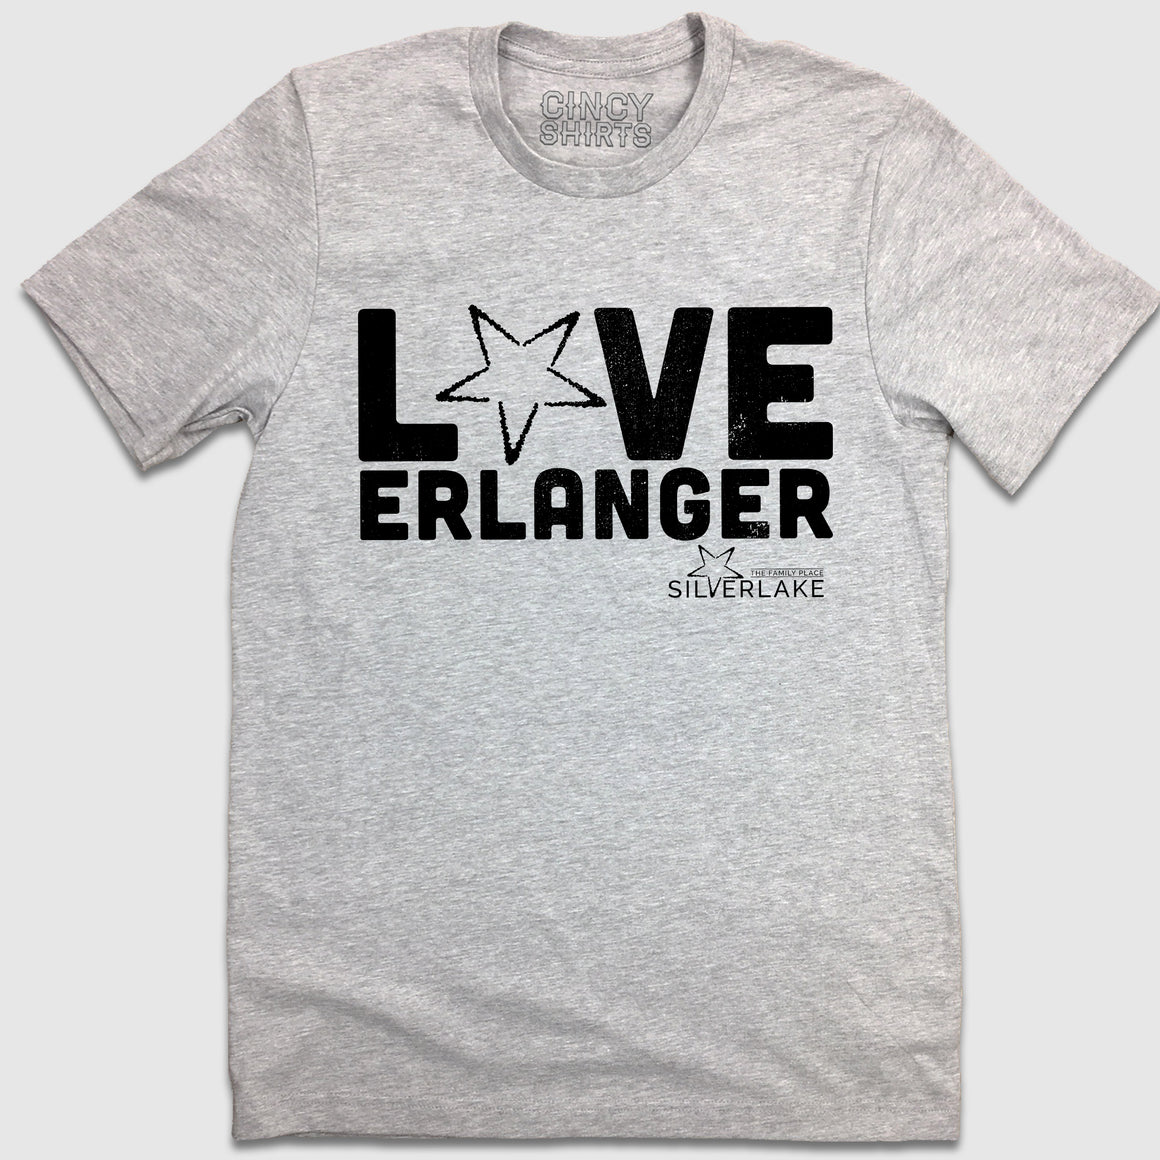 Love Erlanger - Sliverlake - Cincy Shirts